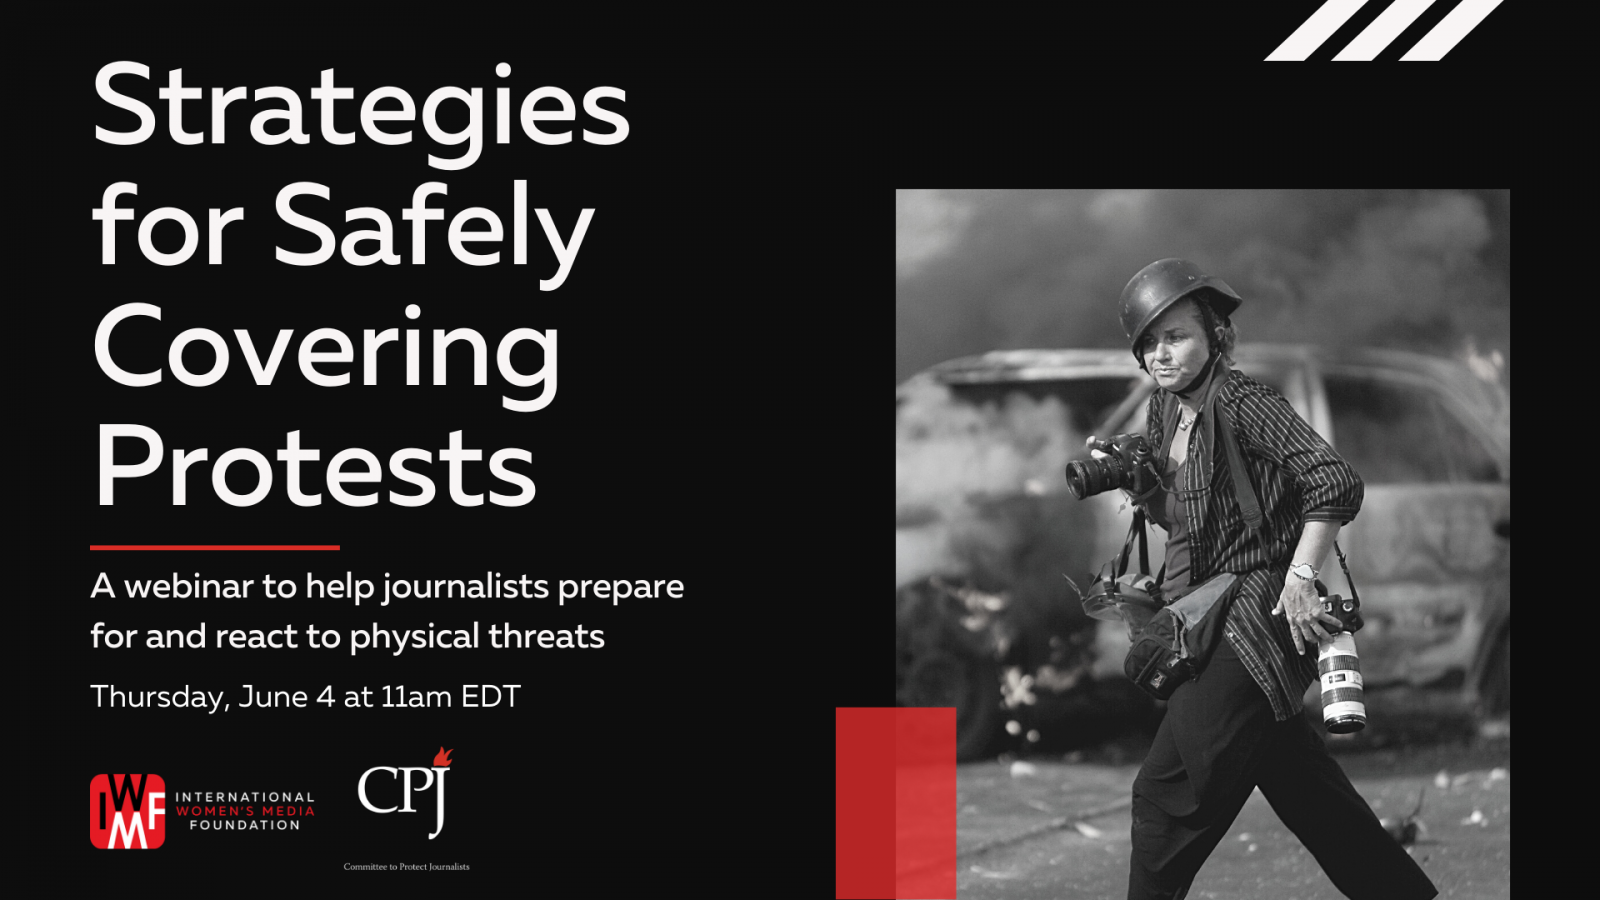 Photography image - Loading Strategies_for_Safely_Covering_Protests_(1).png